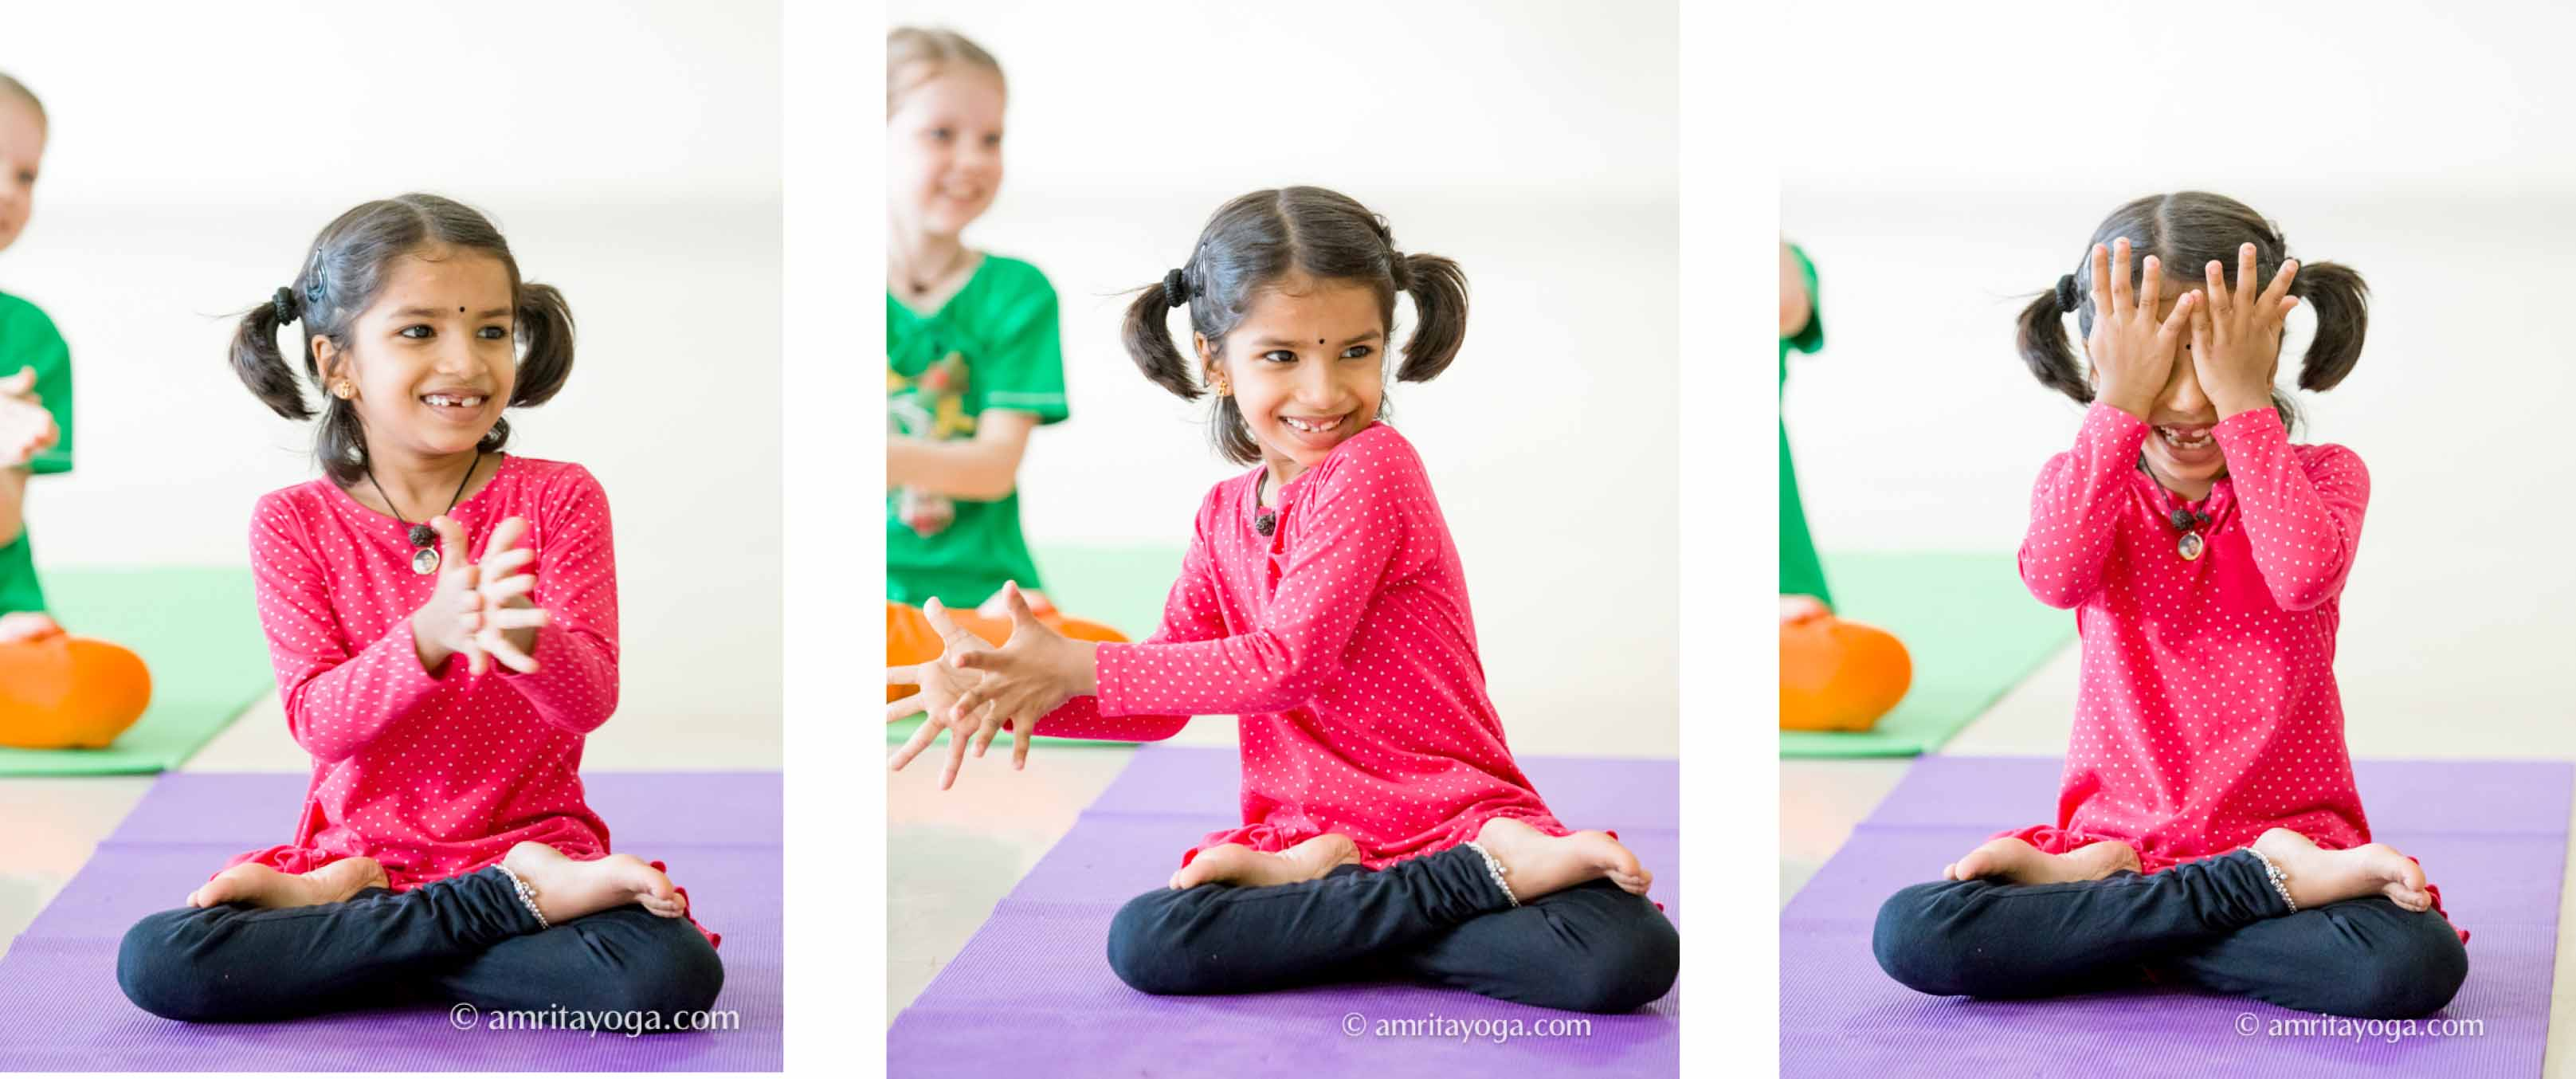 amrita yoga kids series